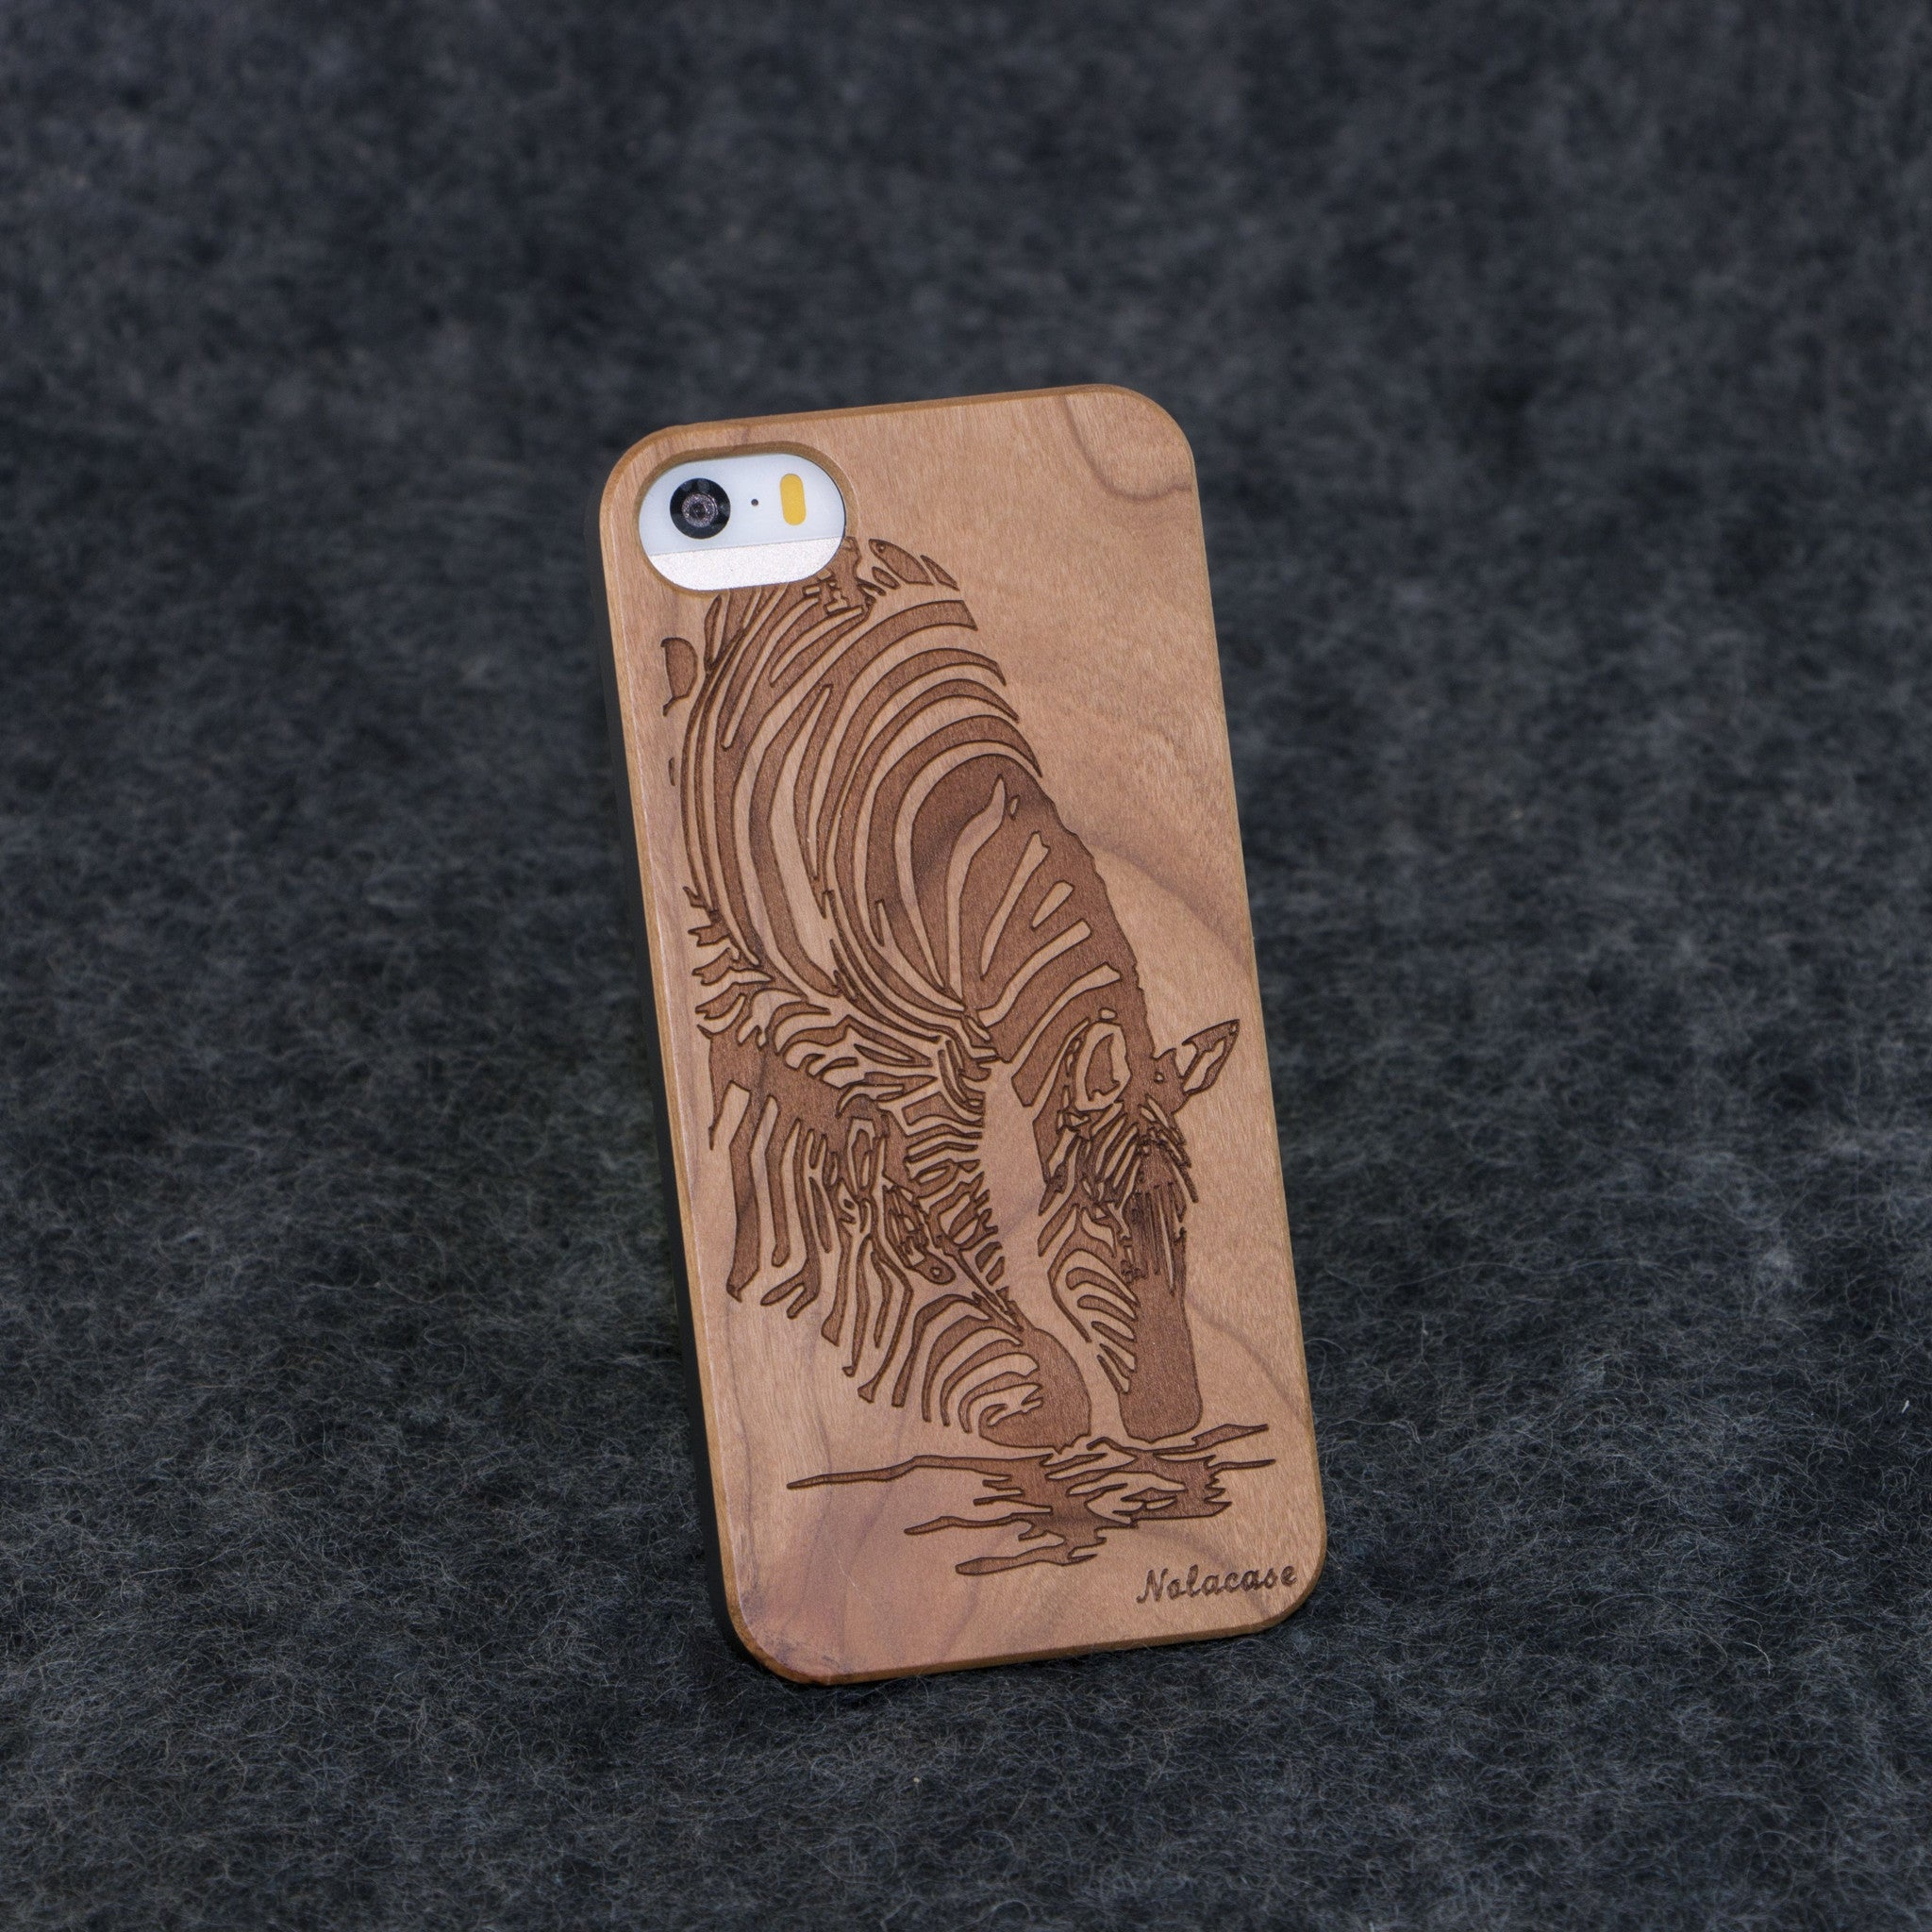 iPhone 5 / 5S Zebra Slim Wood Case - NOLACASE